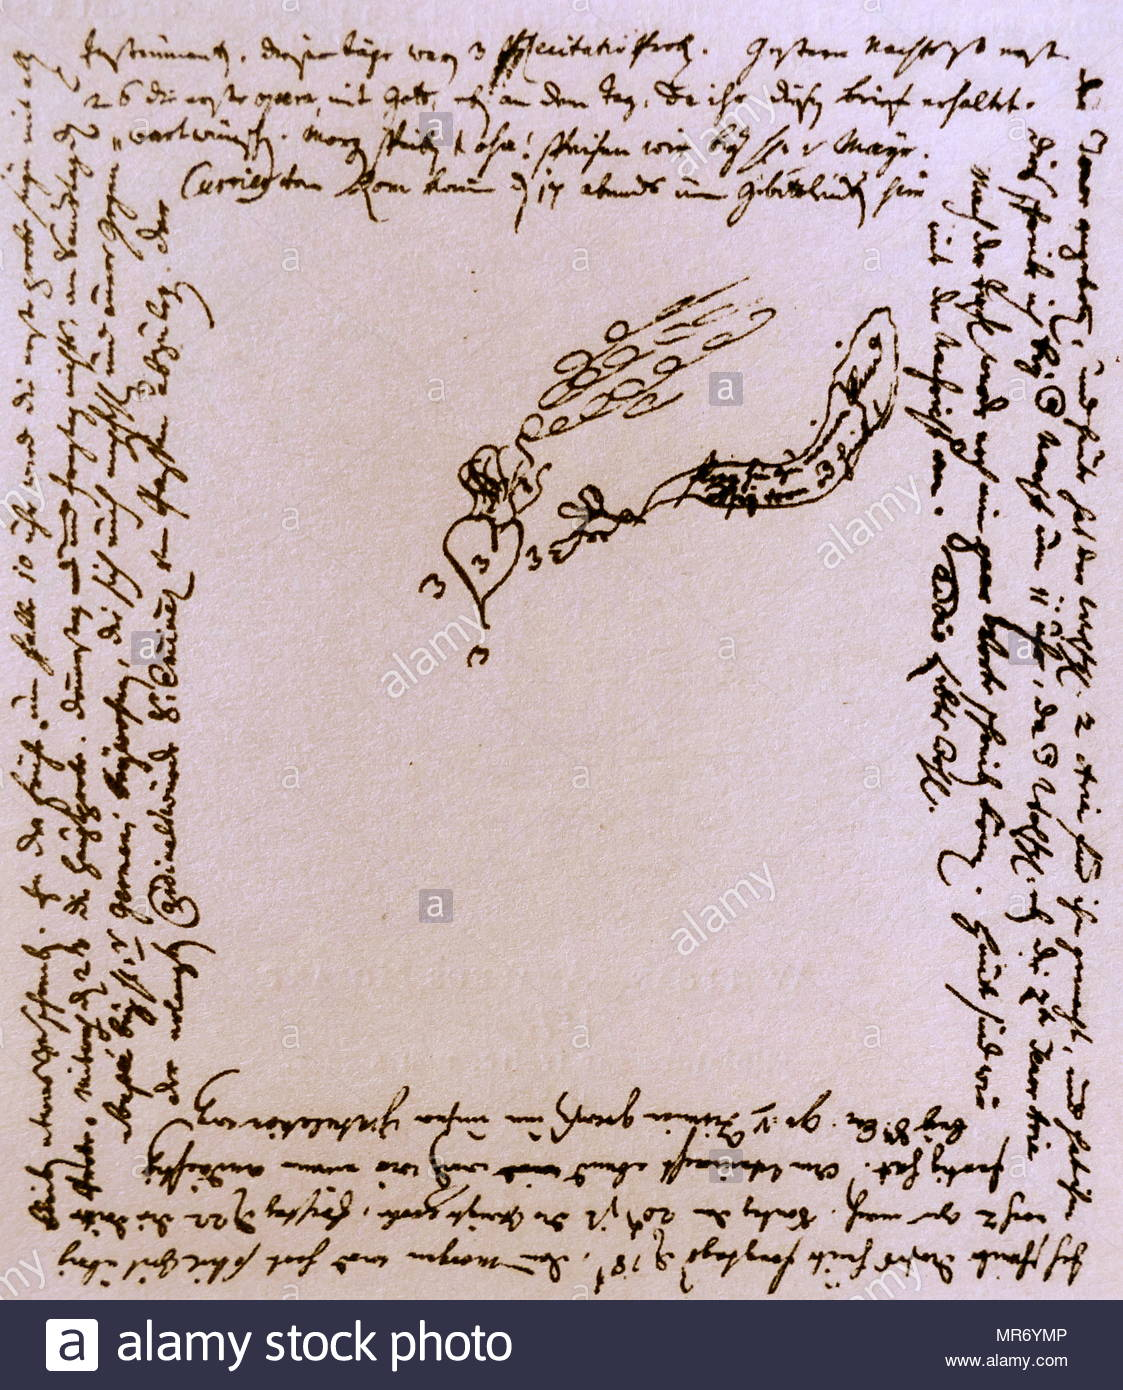 Letter written by Mozart to his sister Marianne during his tour of Italy, days after the completion of his Opera, Lucio Silla in 1772, at the Teatro Regio Ducal in Milan  Wolfgang Amadeus Mozart (1756 – 1791), was a prolific and influential composer of the Classical era. - Stock Image